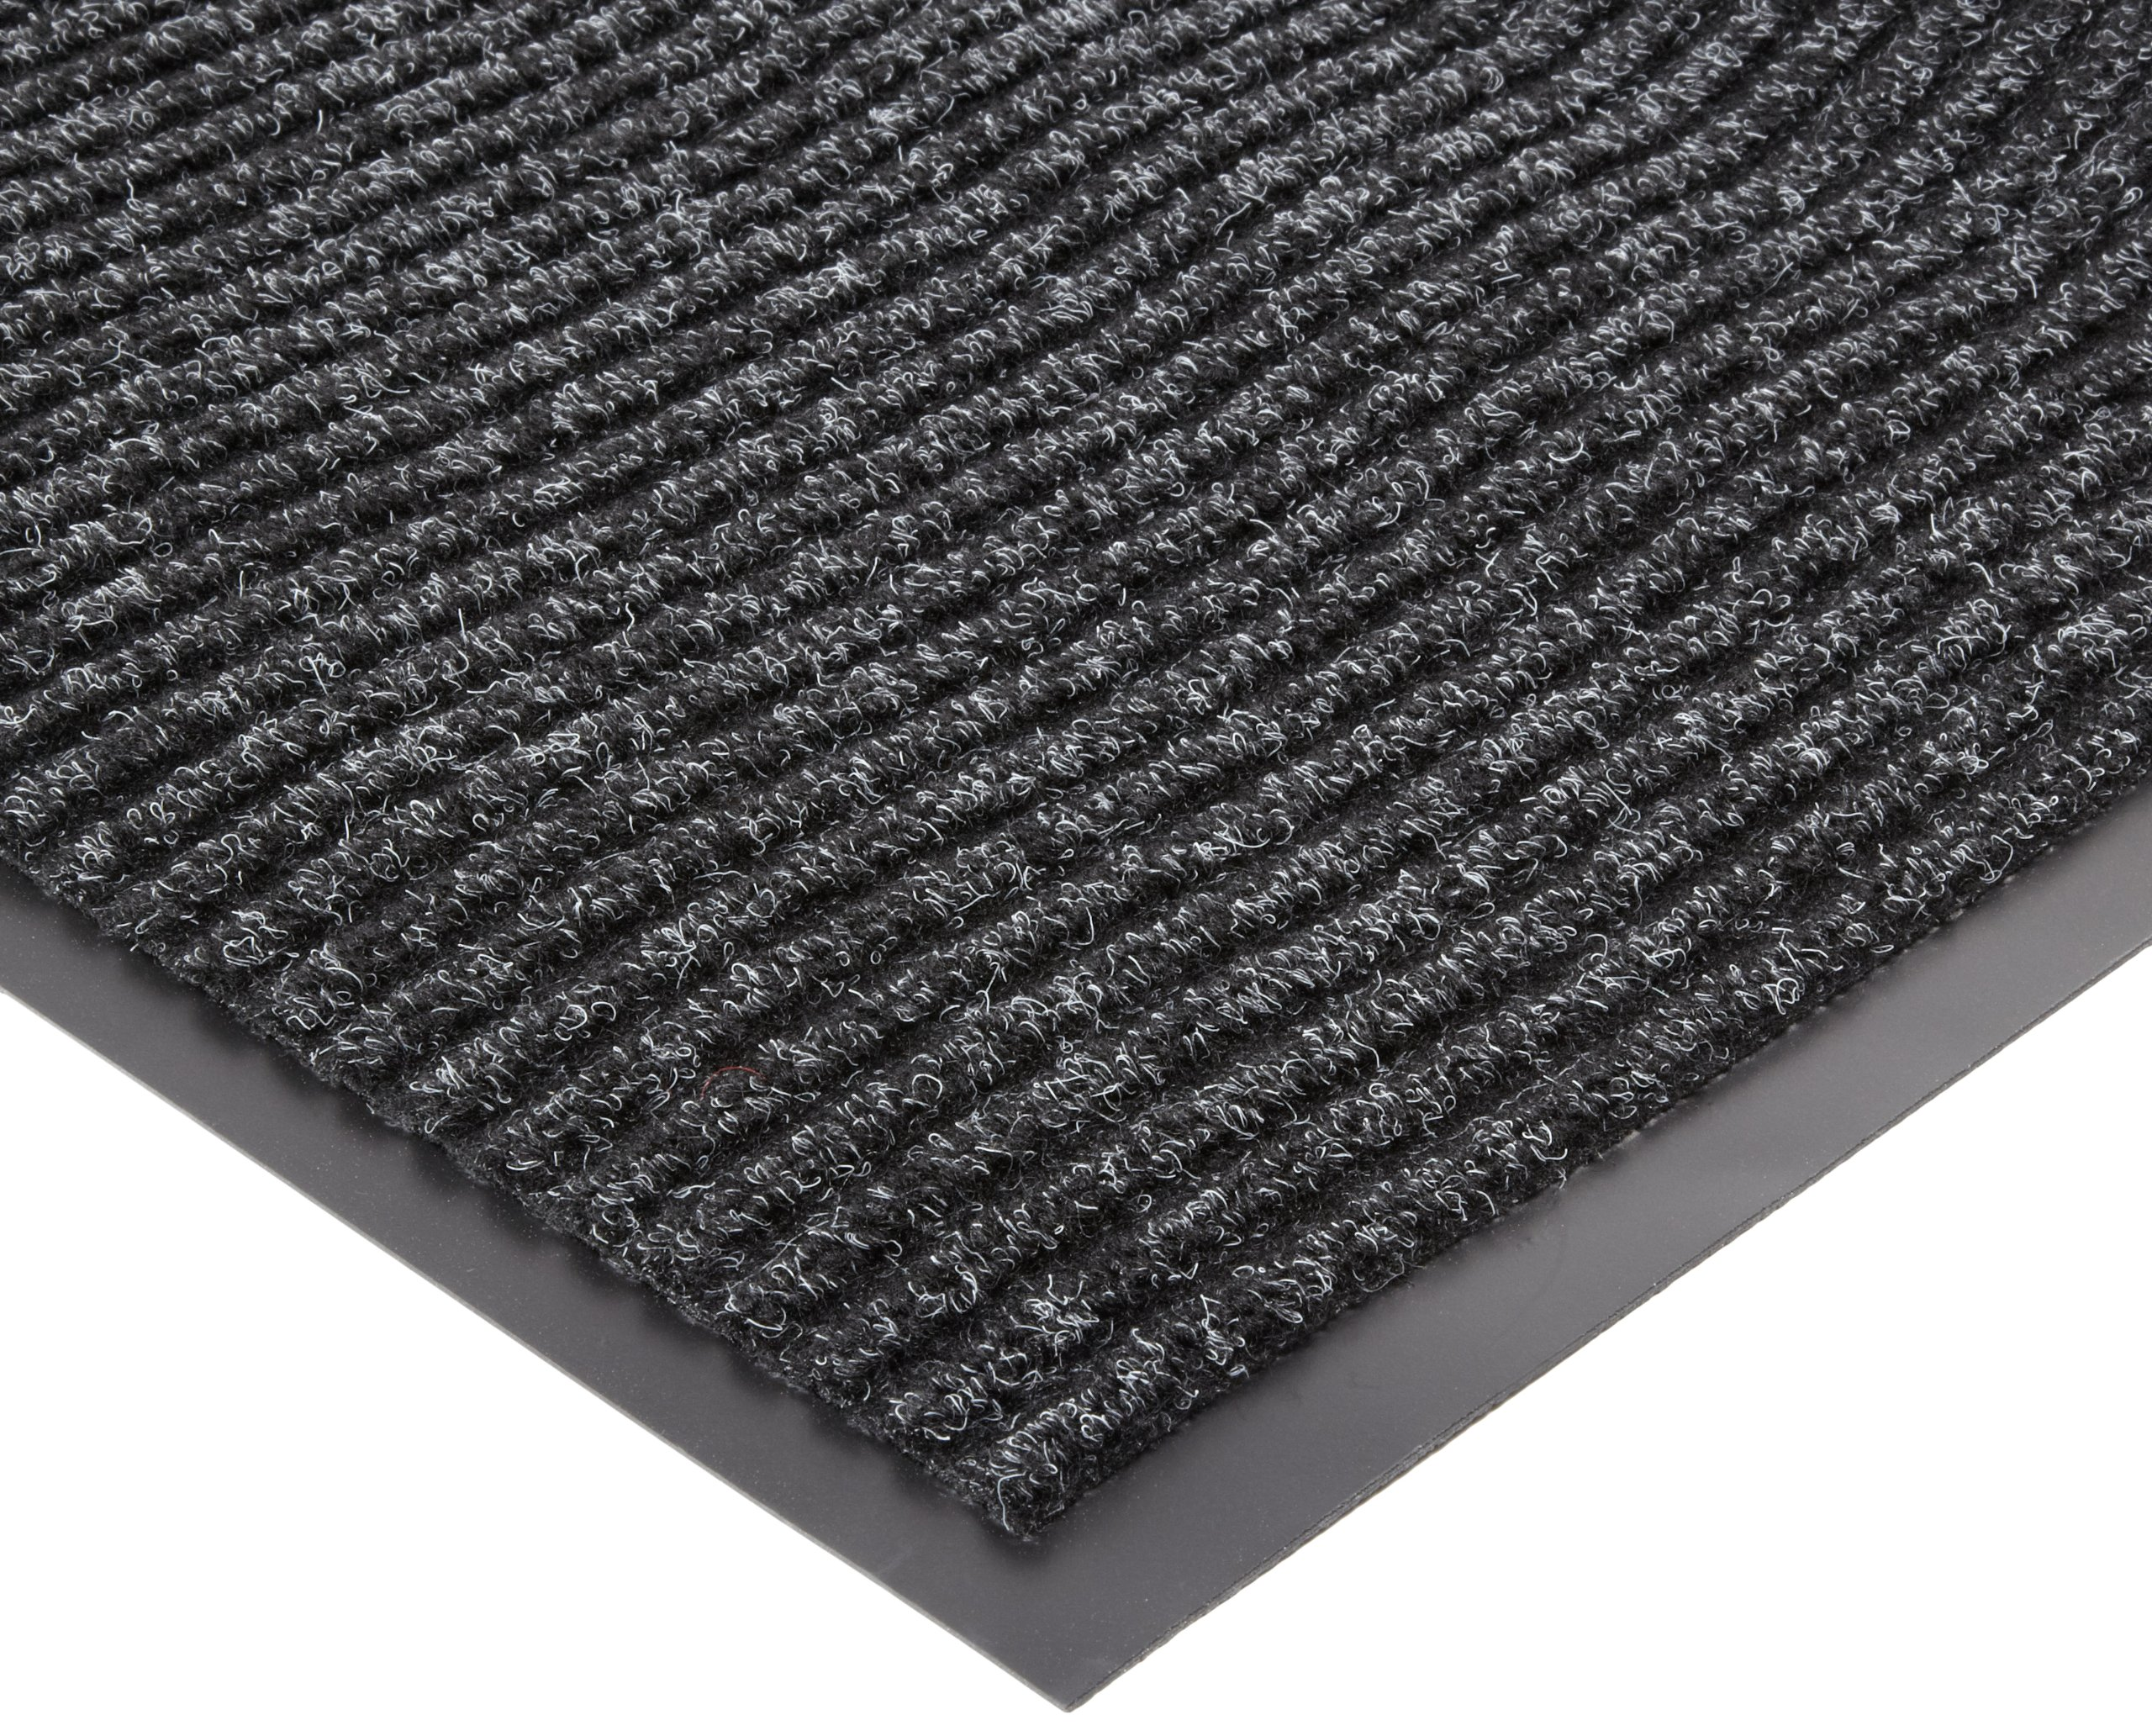 NoTrax 117 Heritage Rib Entrance Mat, for Lobbies and Indoor Entranceways, 3' Width x 6' Length x 3/8'' Thickness, Charcoal